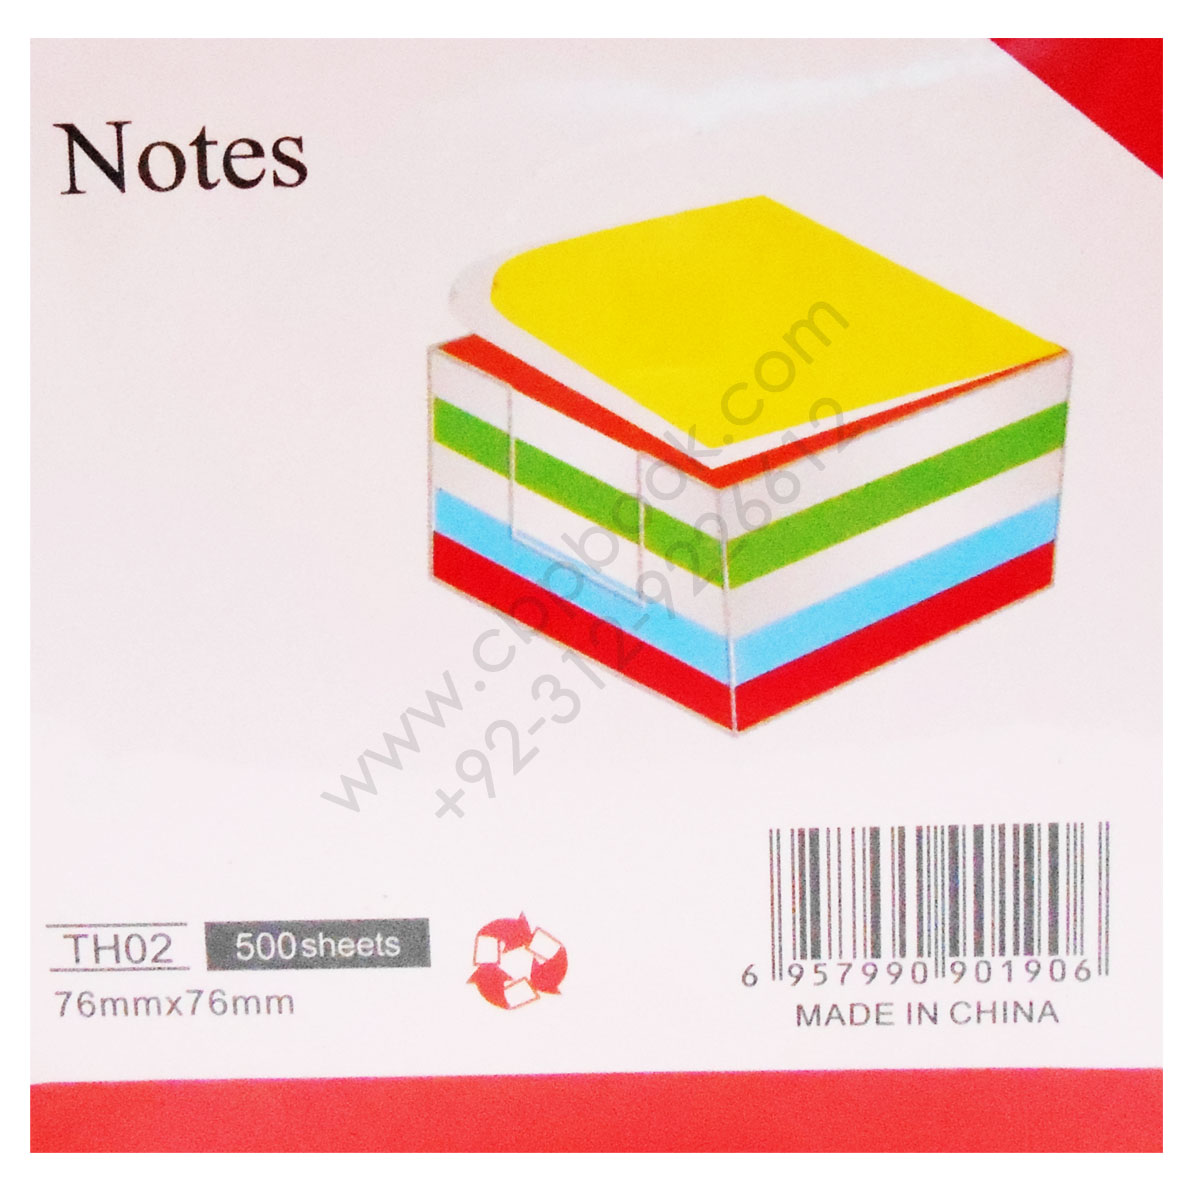 notes th02 500 sheets 76mmx76mm